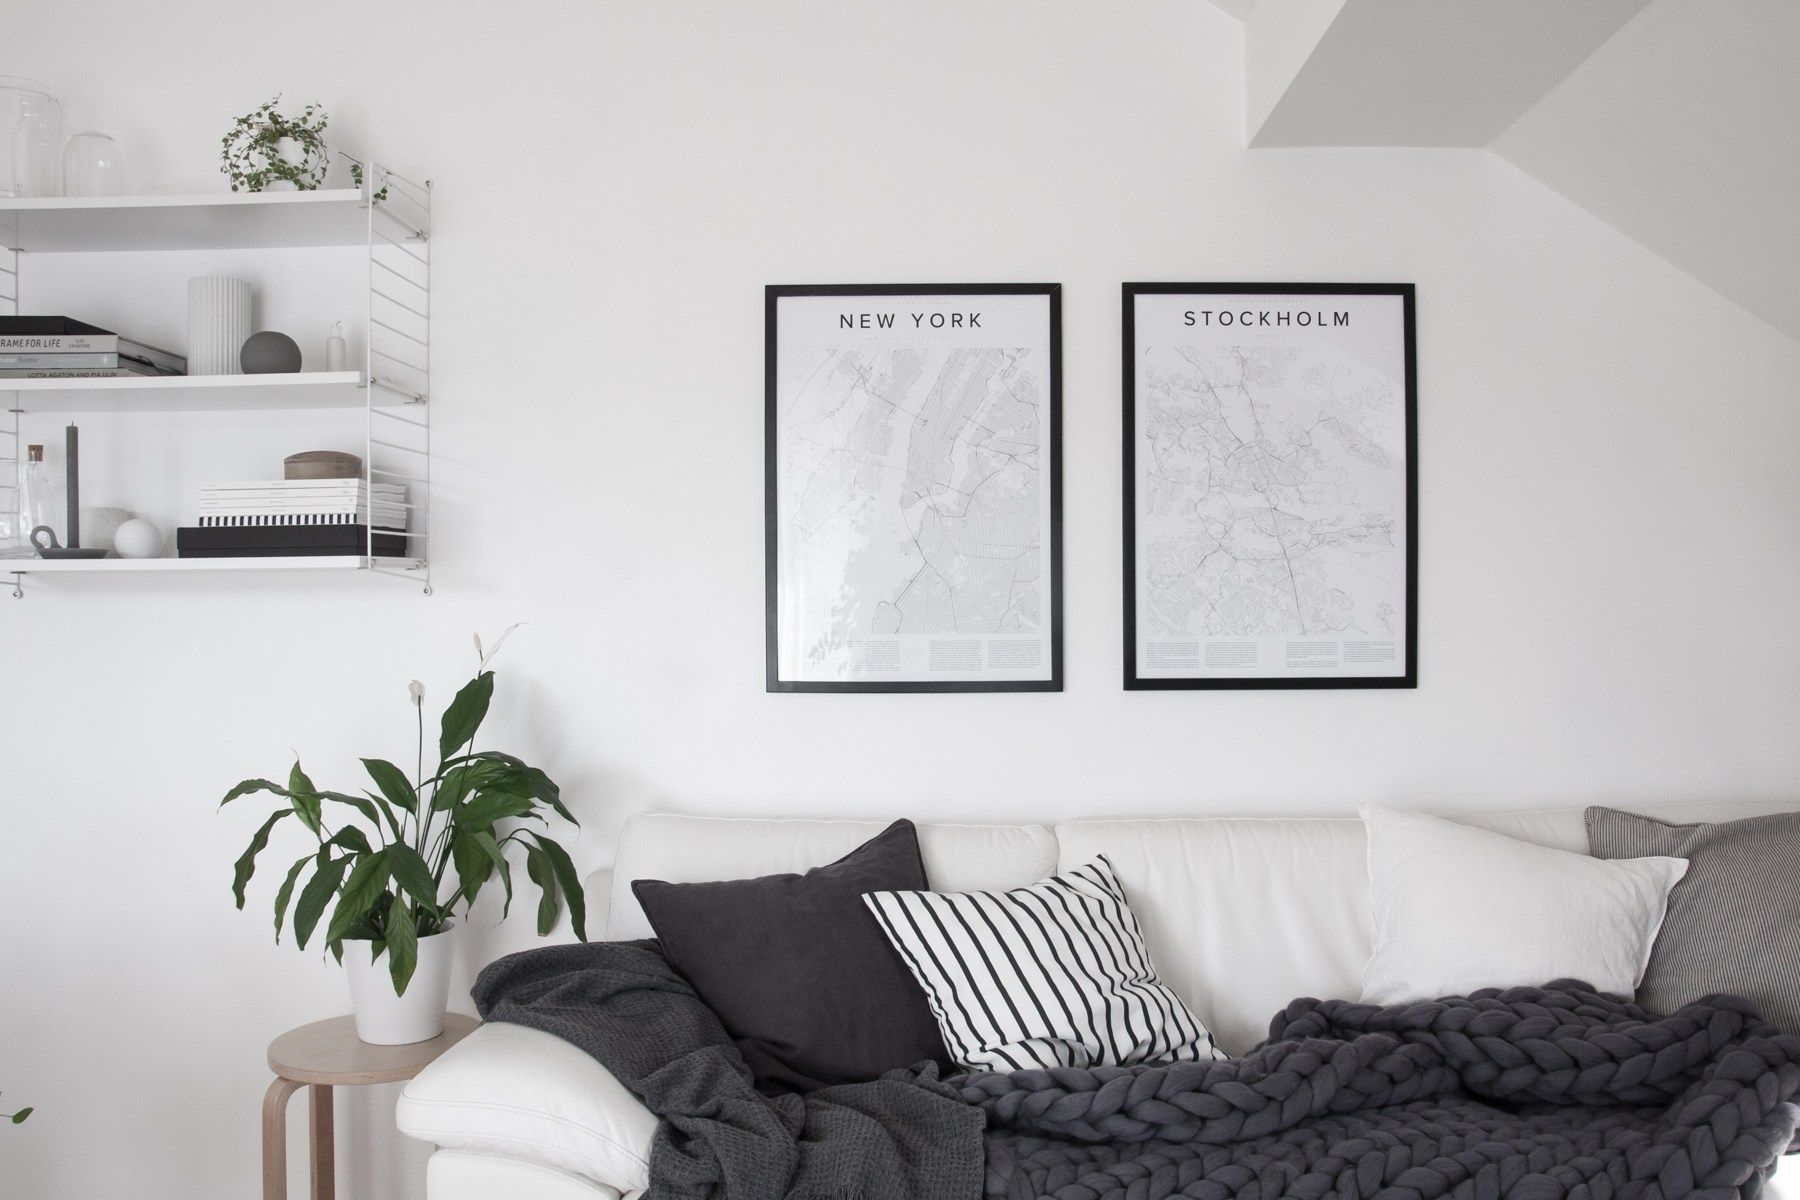 Top 10 tips for adding scandinavian style to your home Decorating walls with posters